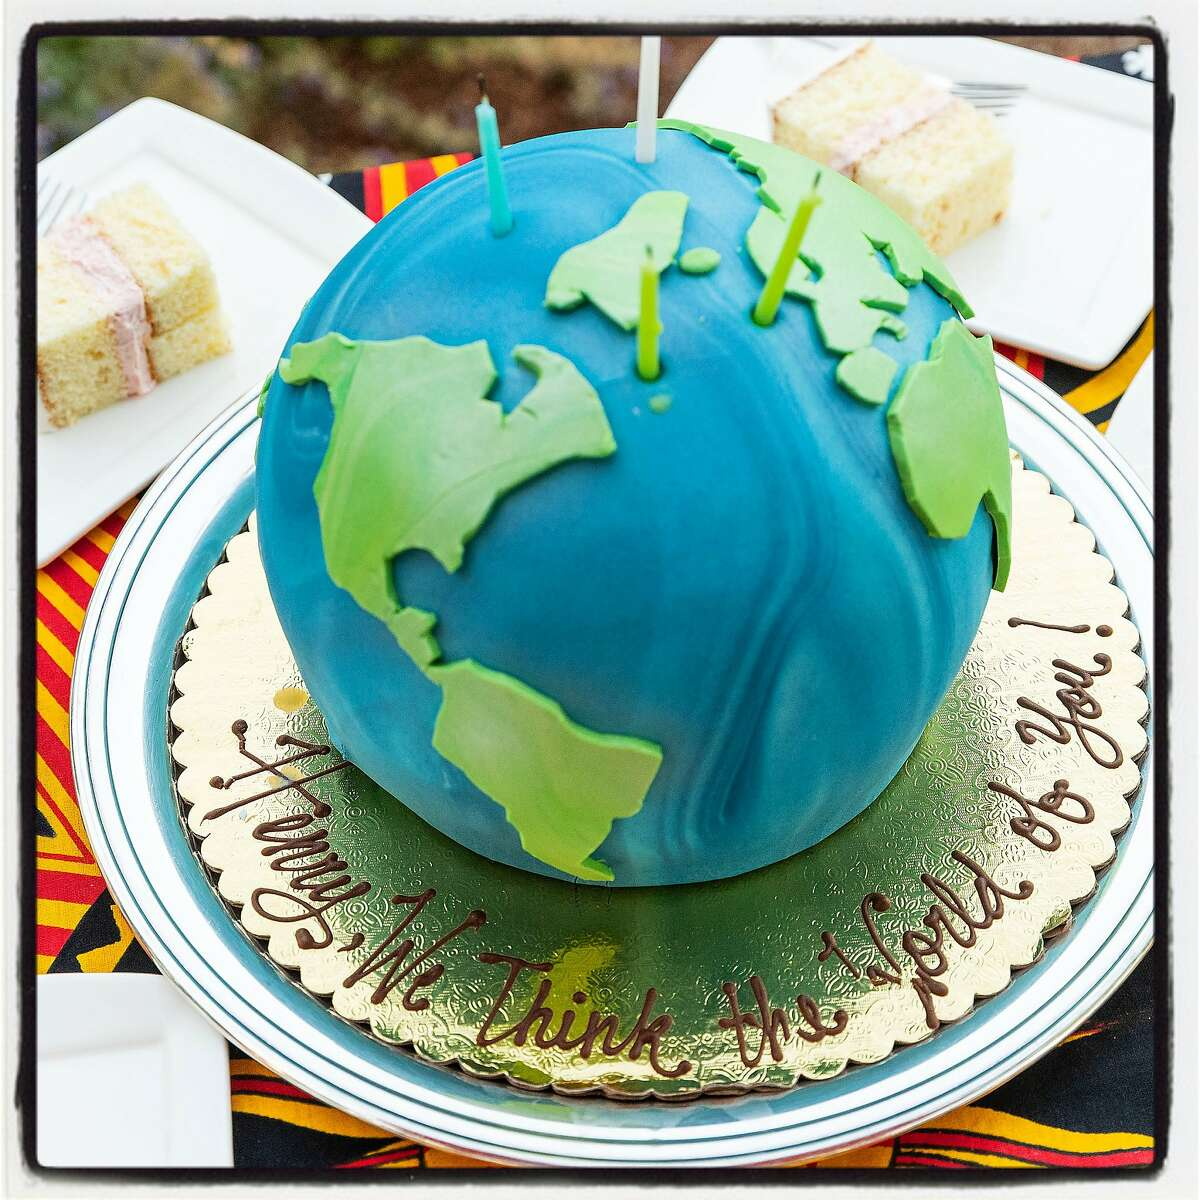 McCall's Catering created a globe-shaped cake to honor the 95th birthday of Henry Kissinger. July 19, 2018.